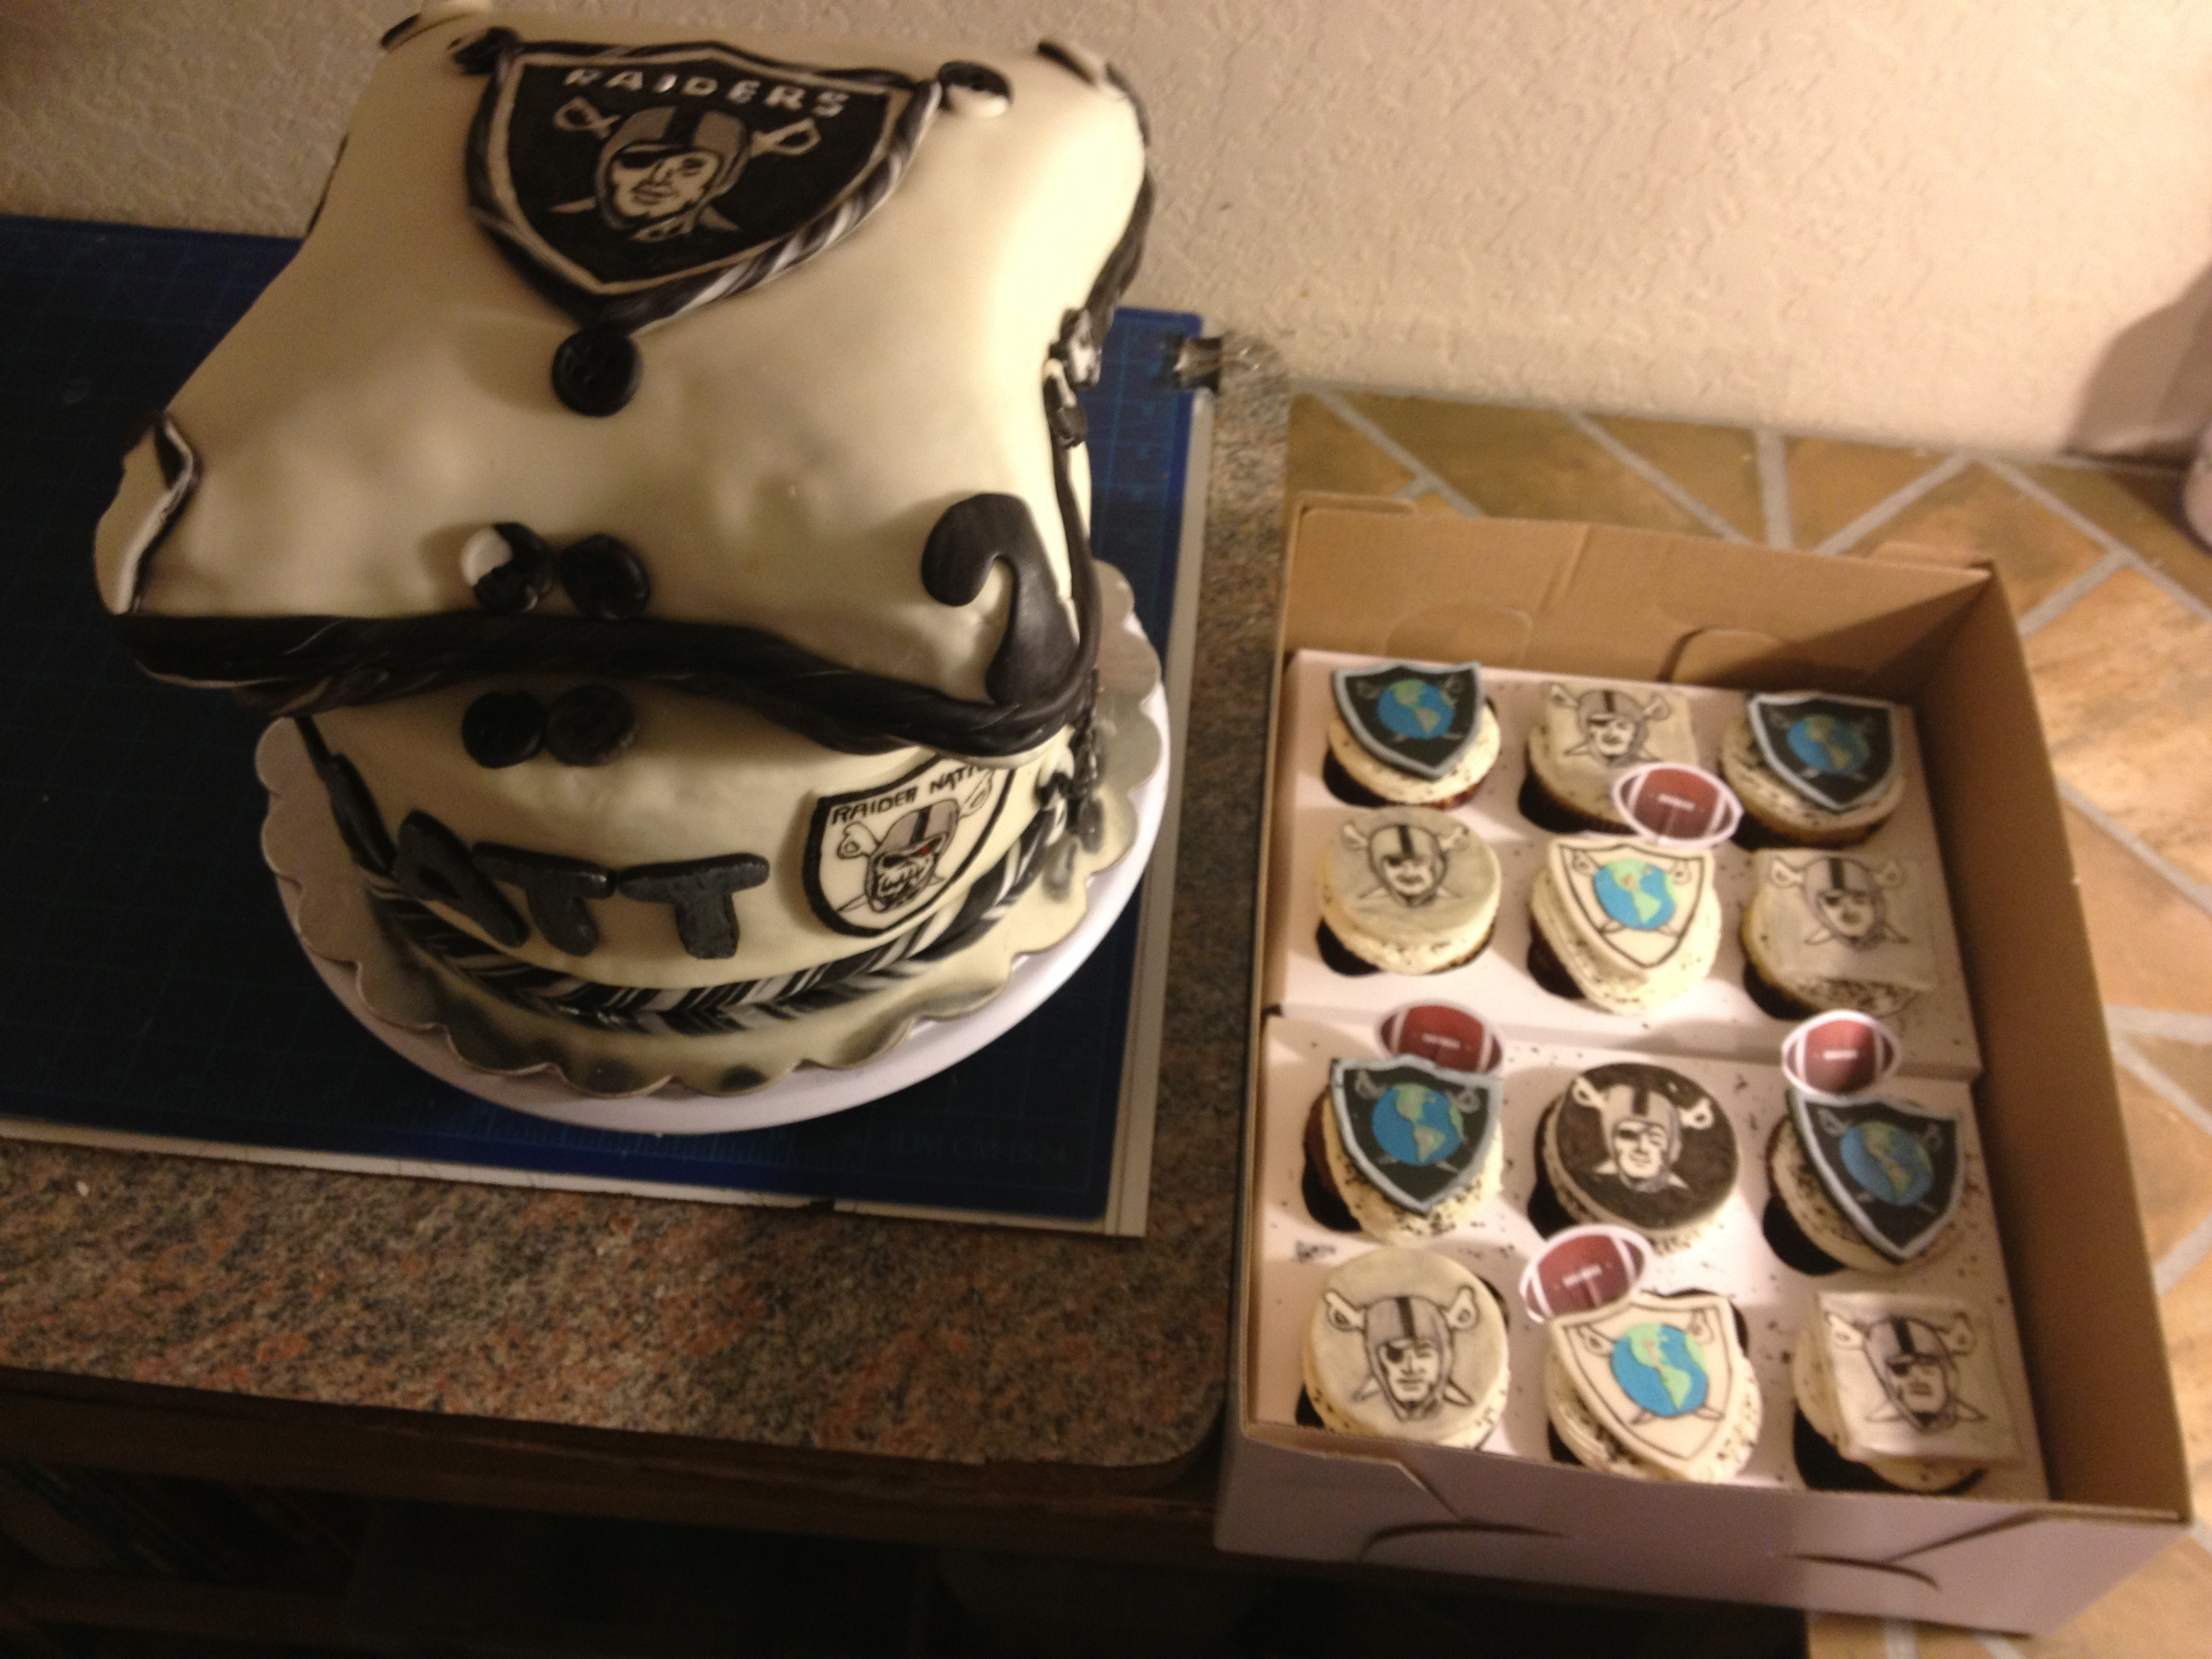 Raiders Cake Completed Here Are Some Close Ups Of The